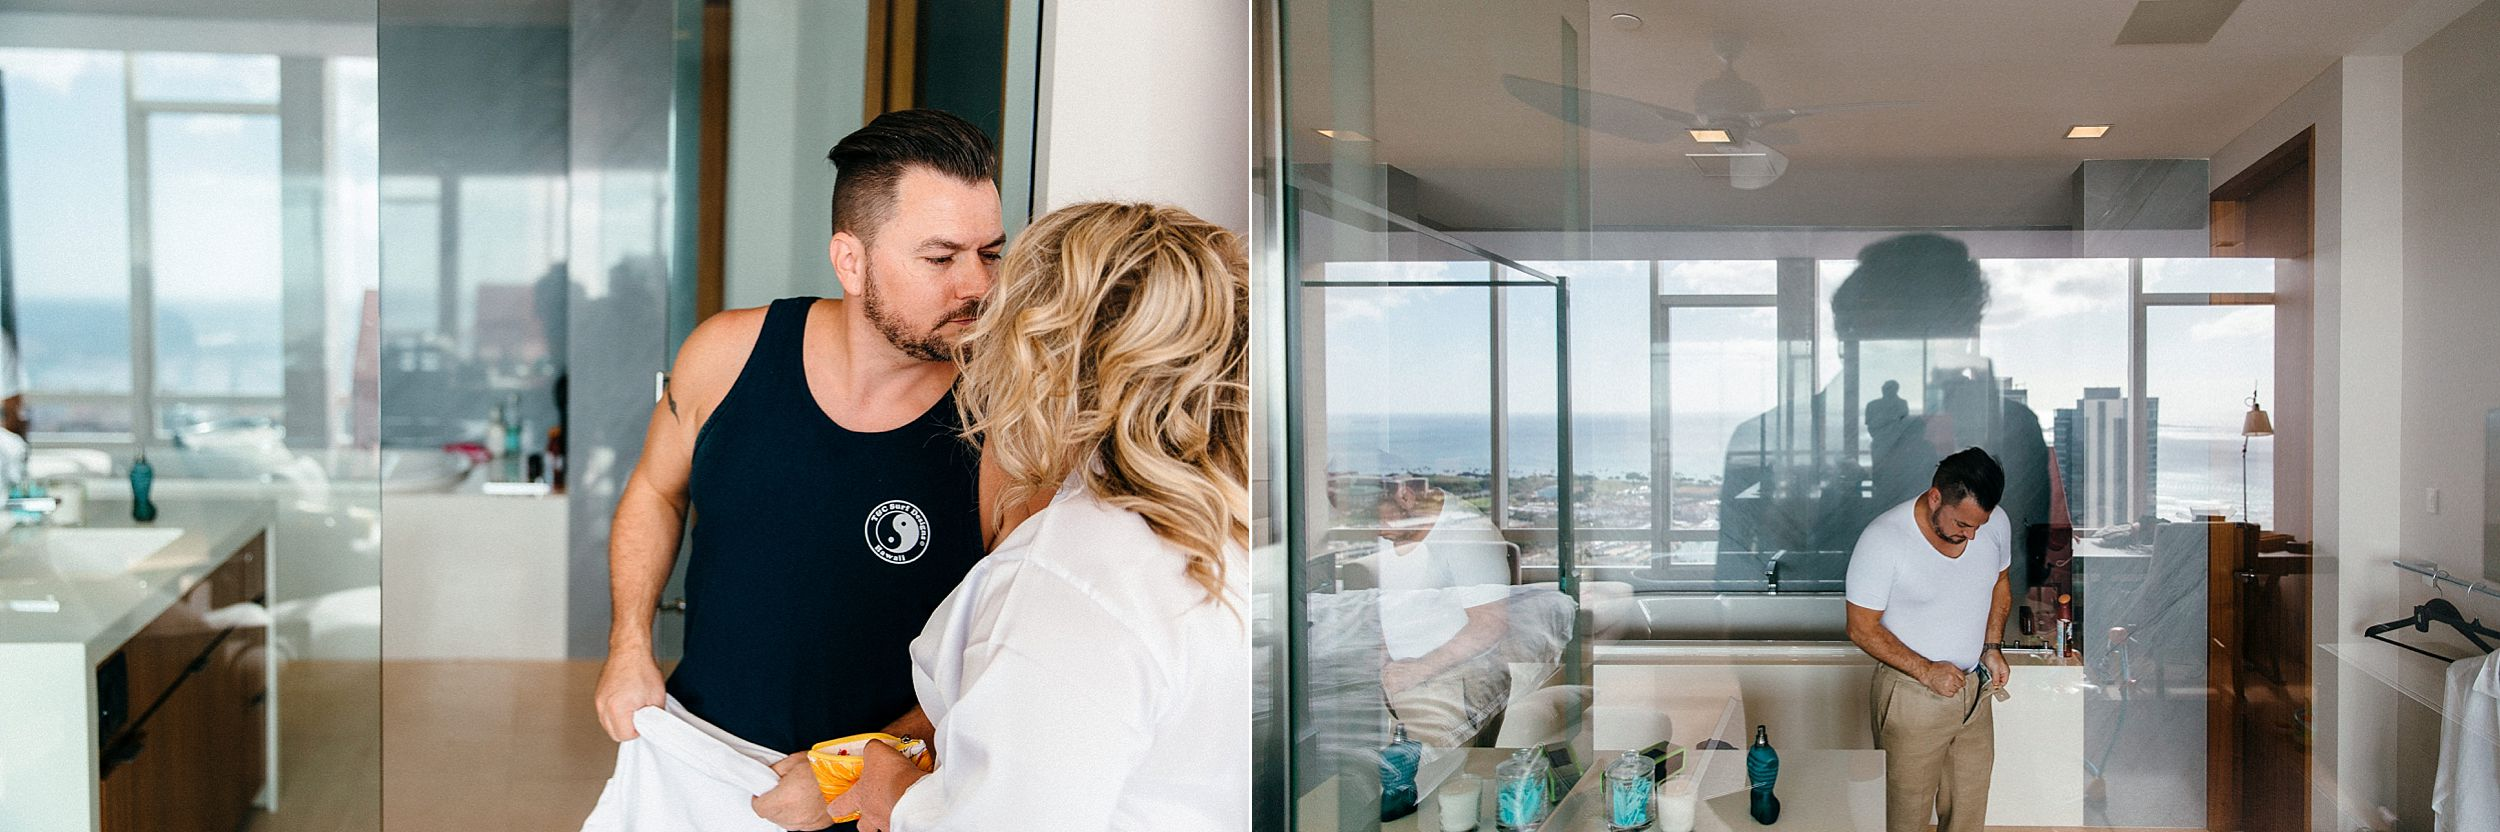 Wedding day getting ready images in a Honolulu high rise